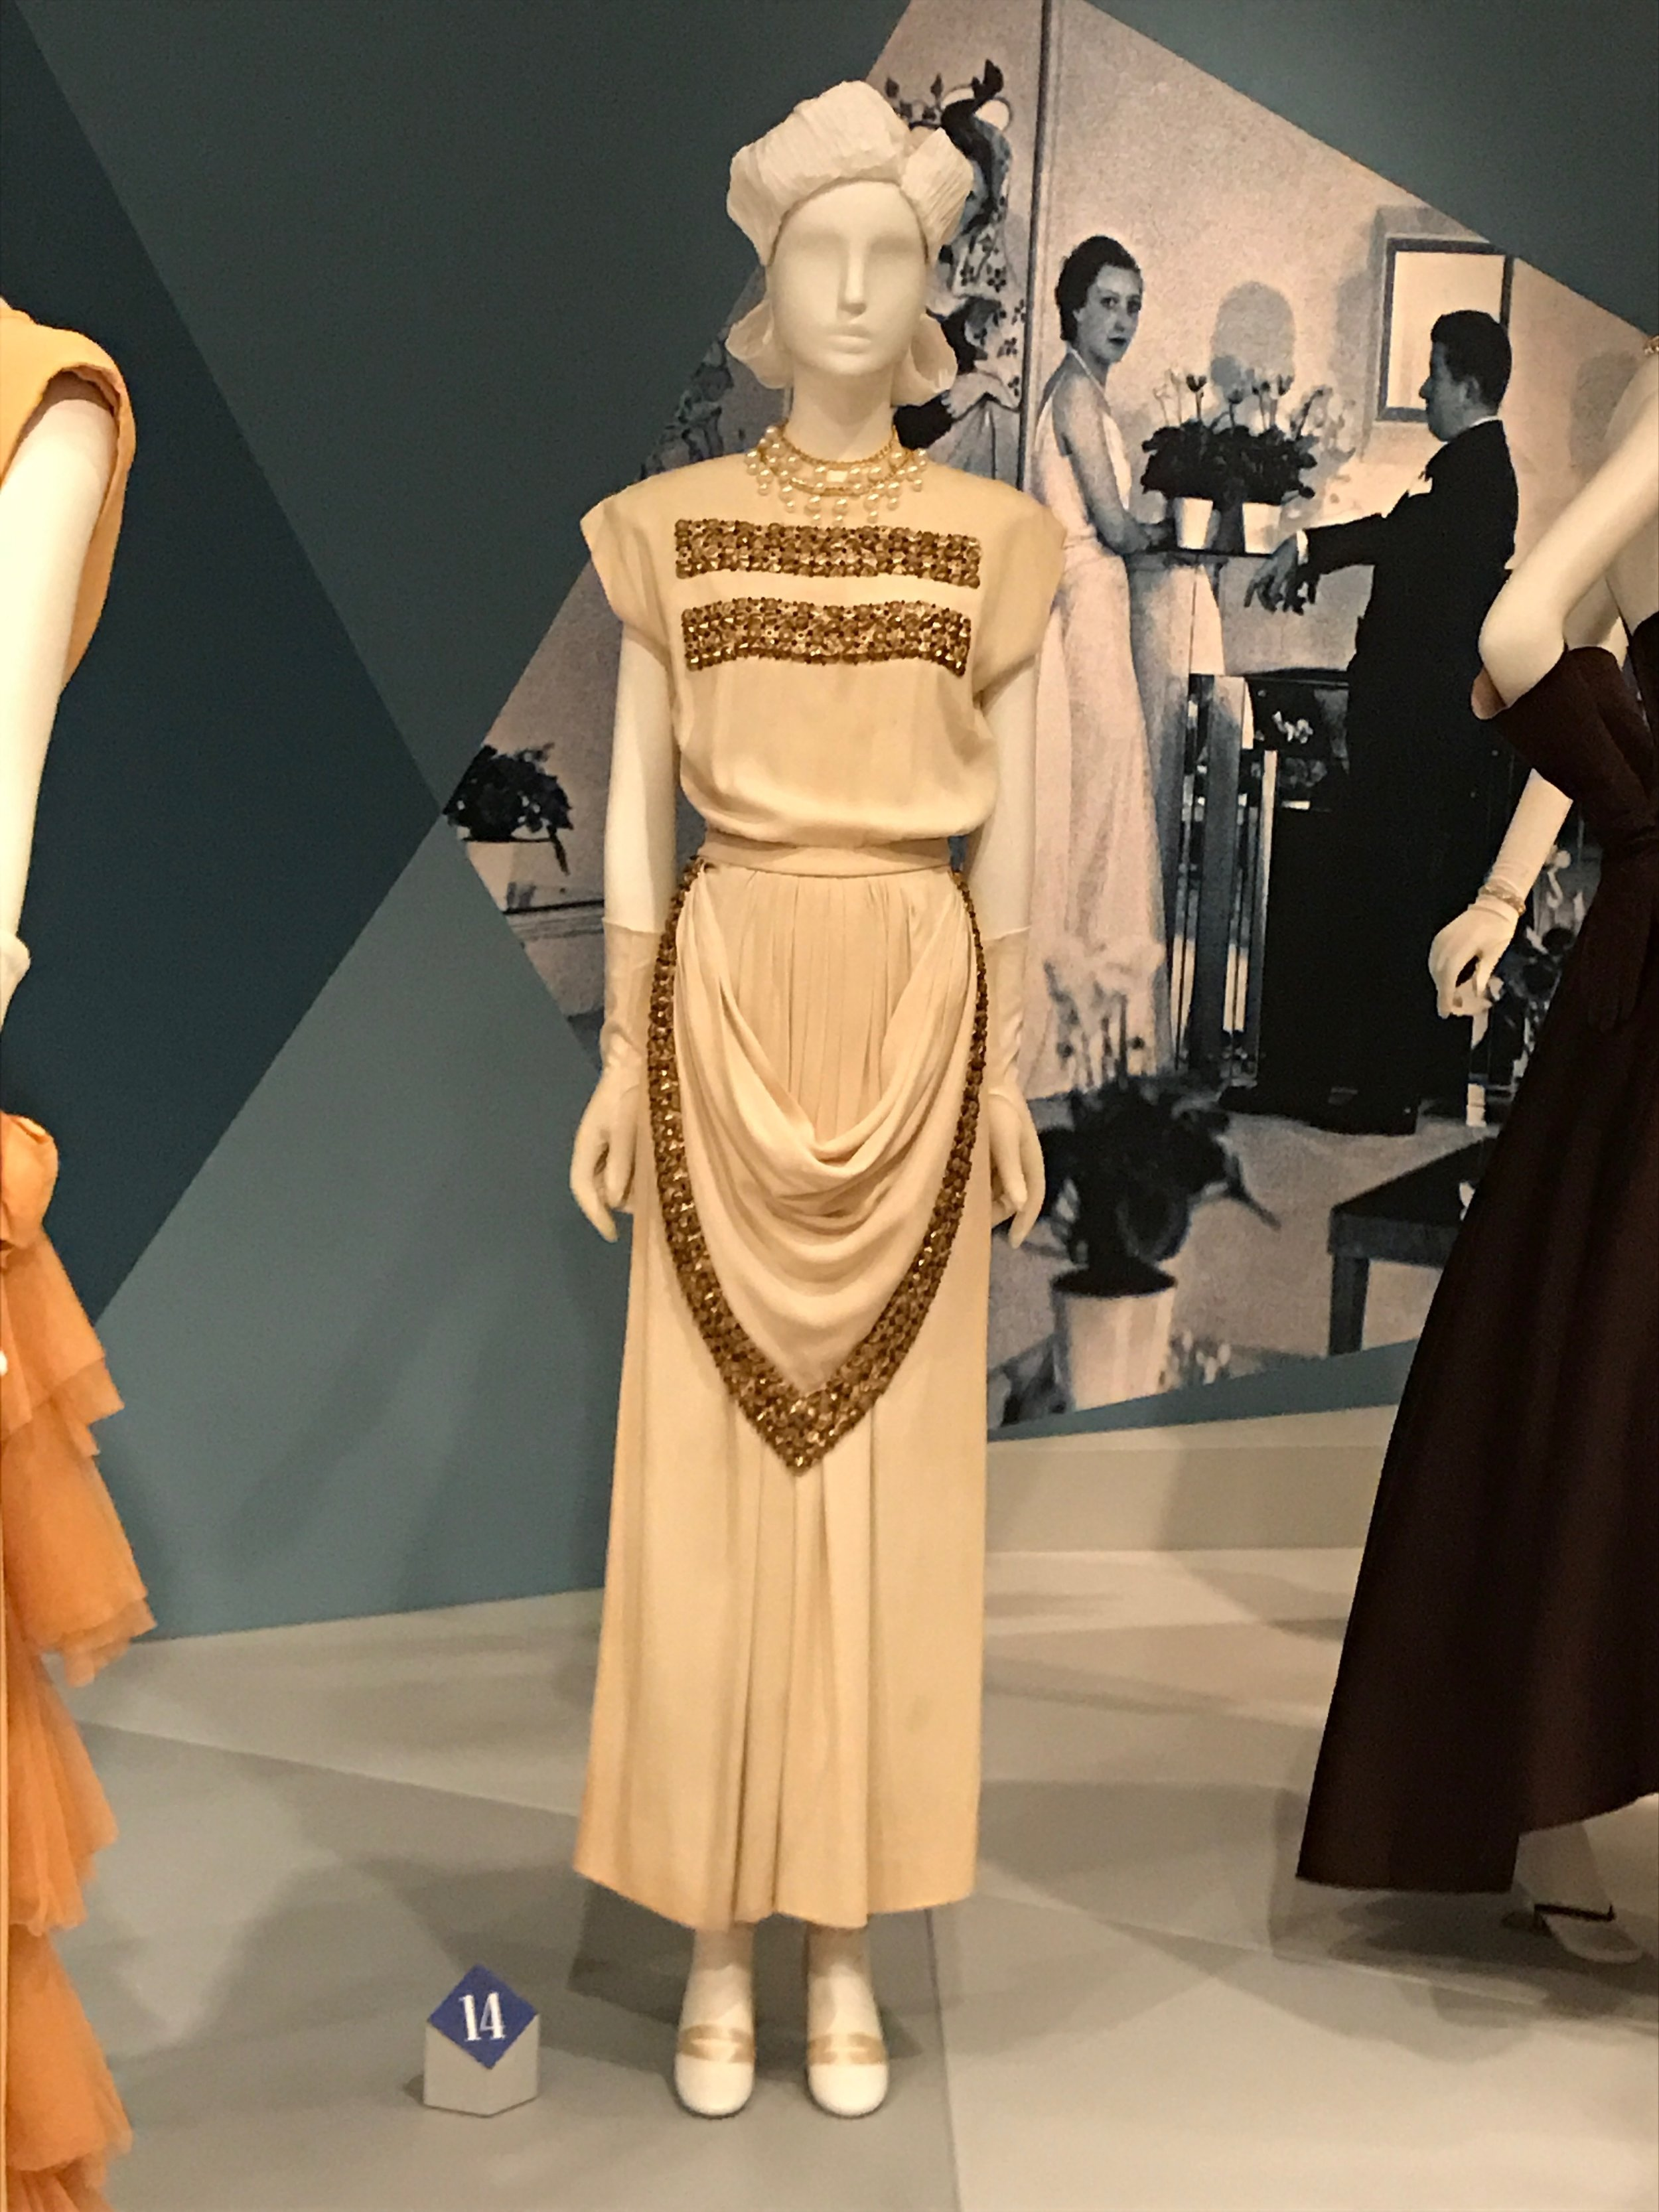 The restored dress, in all its glory